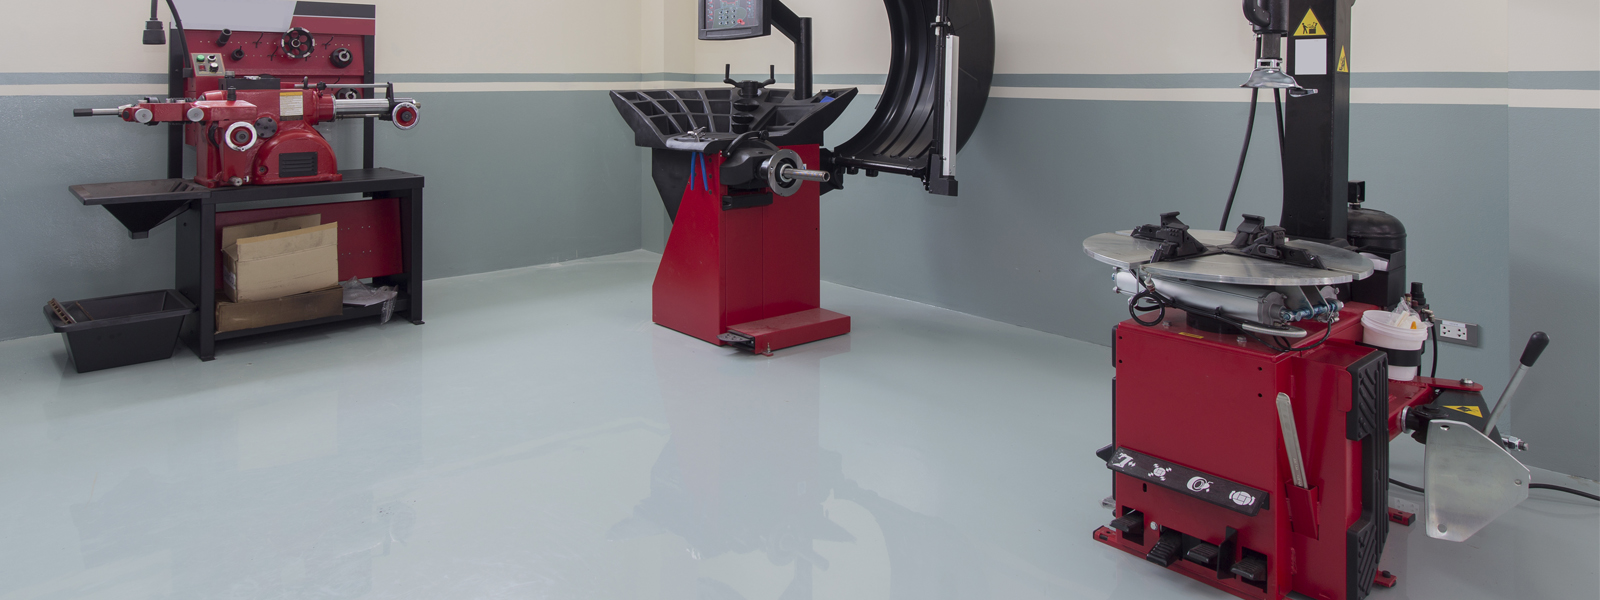 Epoxy Work Floor